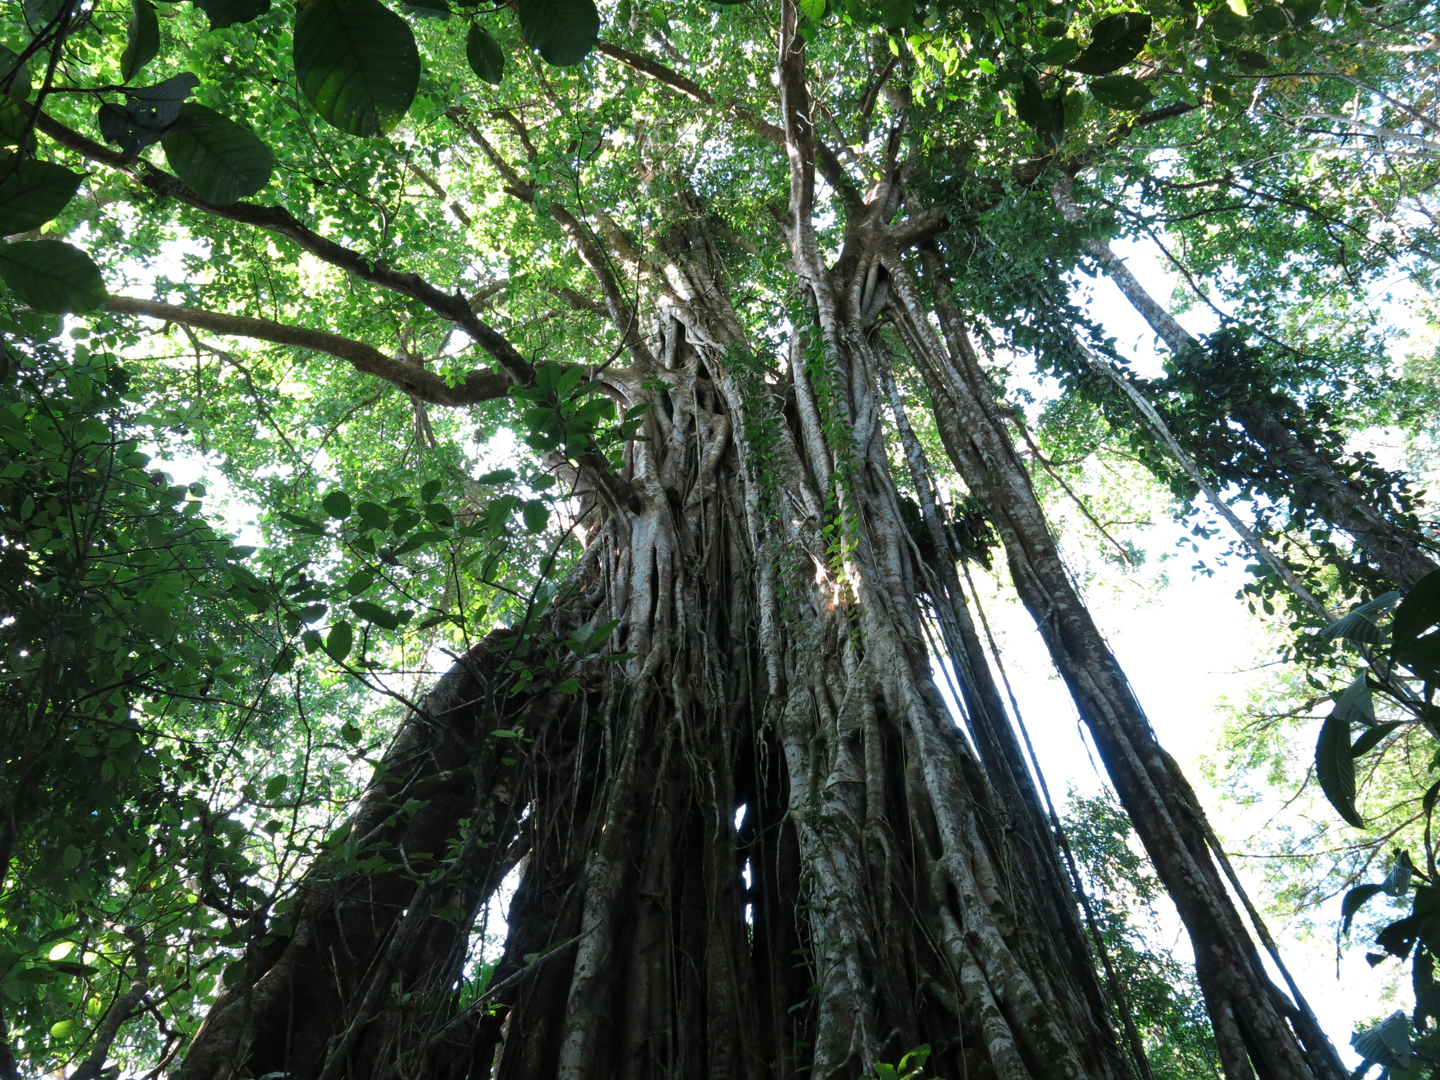 Forest canopy, Costa Rica